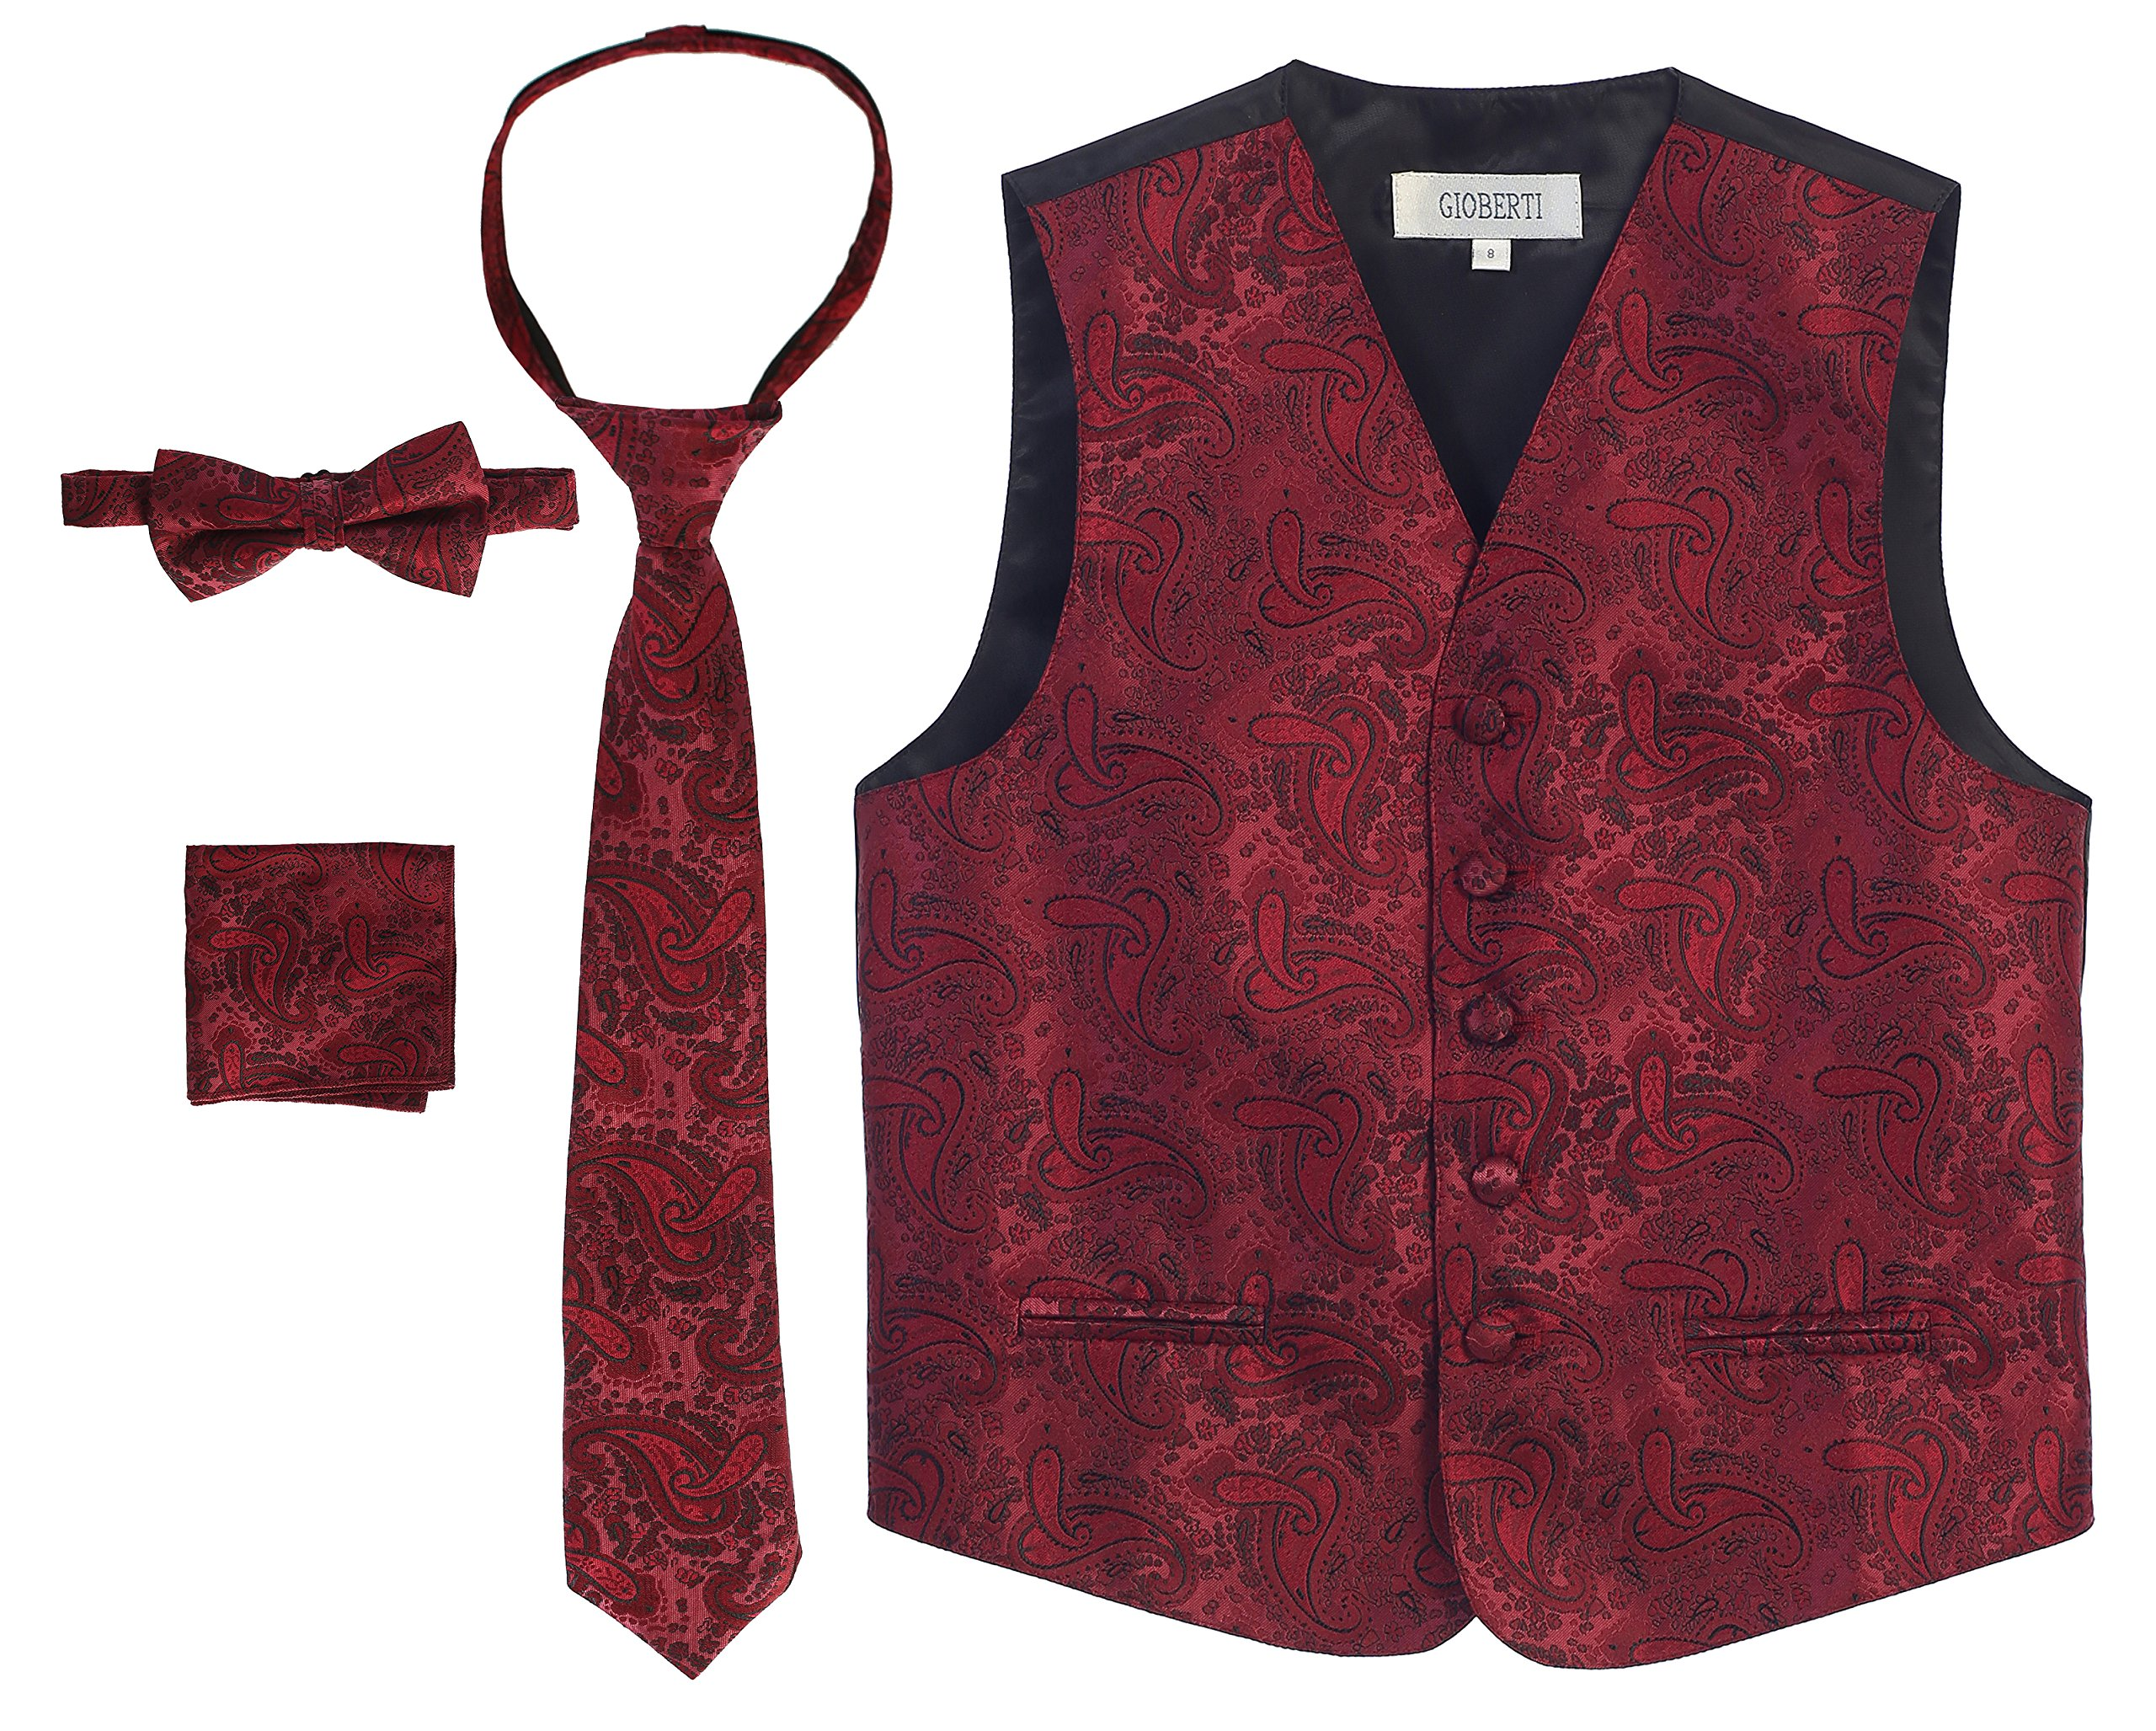 Gioberti Boy's 4 Piece Formal Paisley Vest Set, Burgundy, Size 8